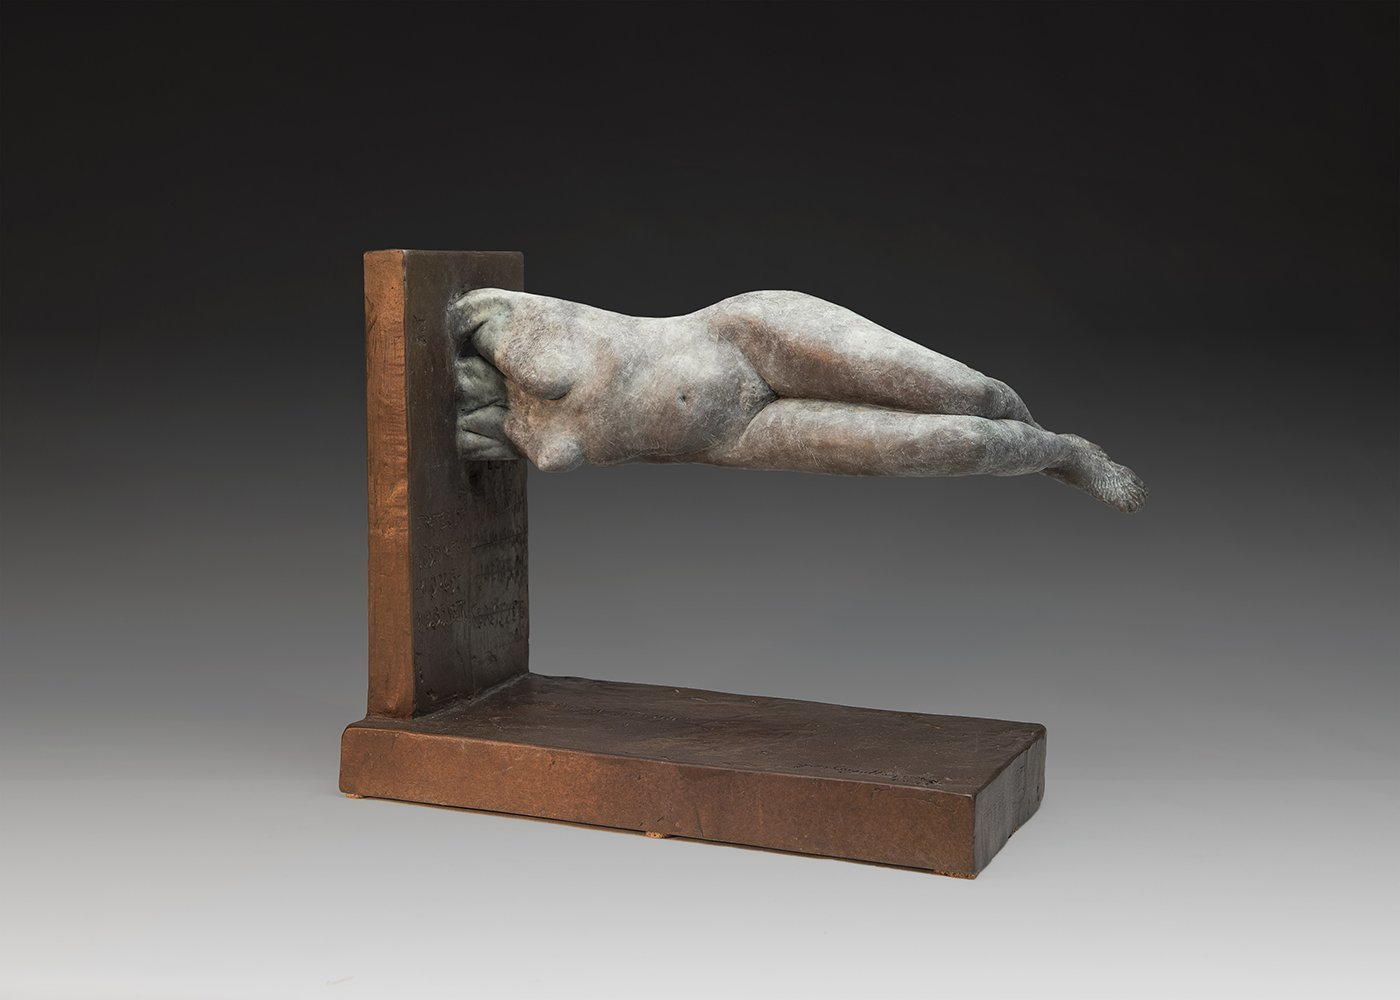 Yves  Goyatton; Weighless, 2016, Original Sculpture Bronze, 7 x 14 inches. Artwork description: 241 Yves Goyatton bronze contemporary sculpture was created in 2016 Weightless is a tribute to life. This body is floating but remains strong defying gravitational pull. Like an imaginary line who can represent the good bad of human spirit. ...